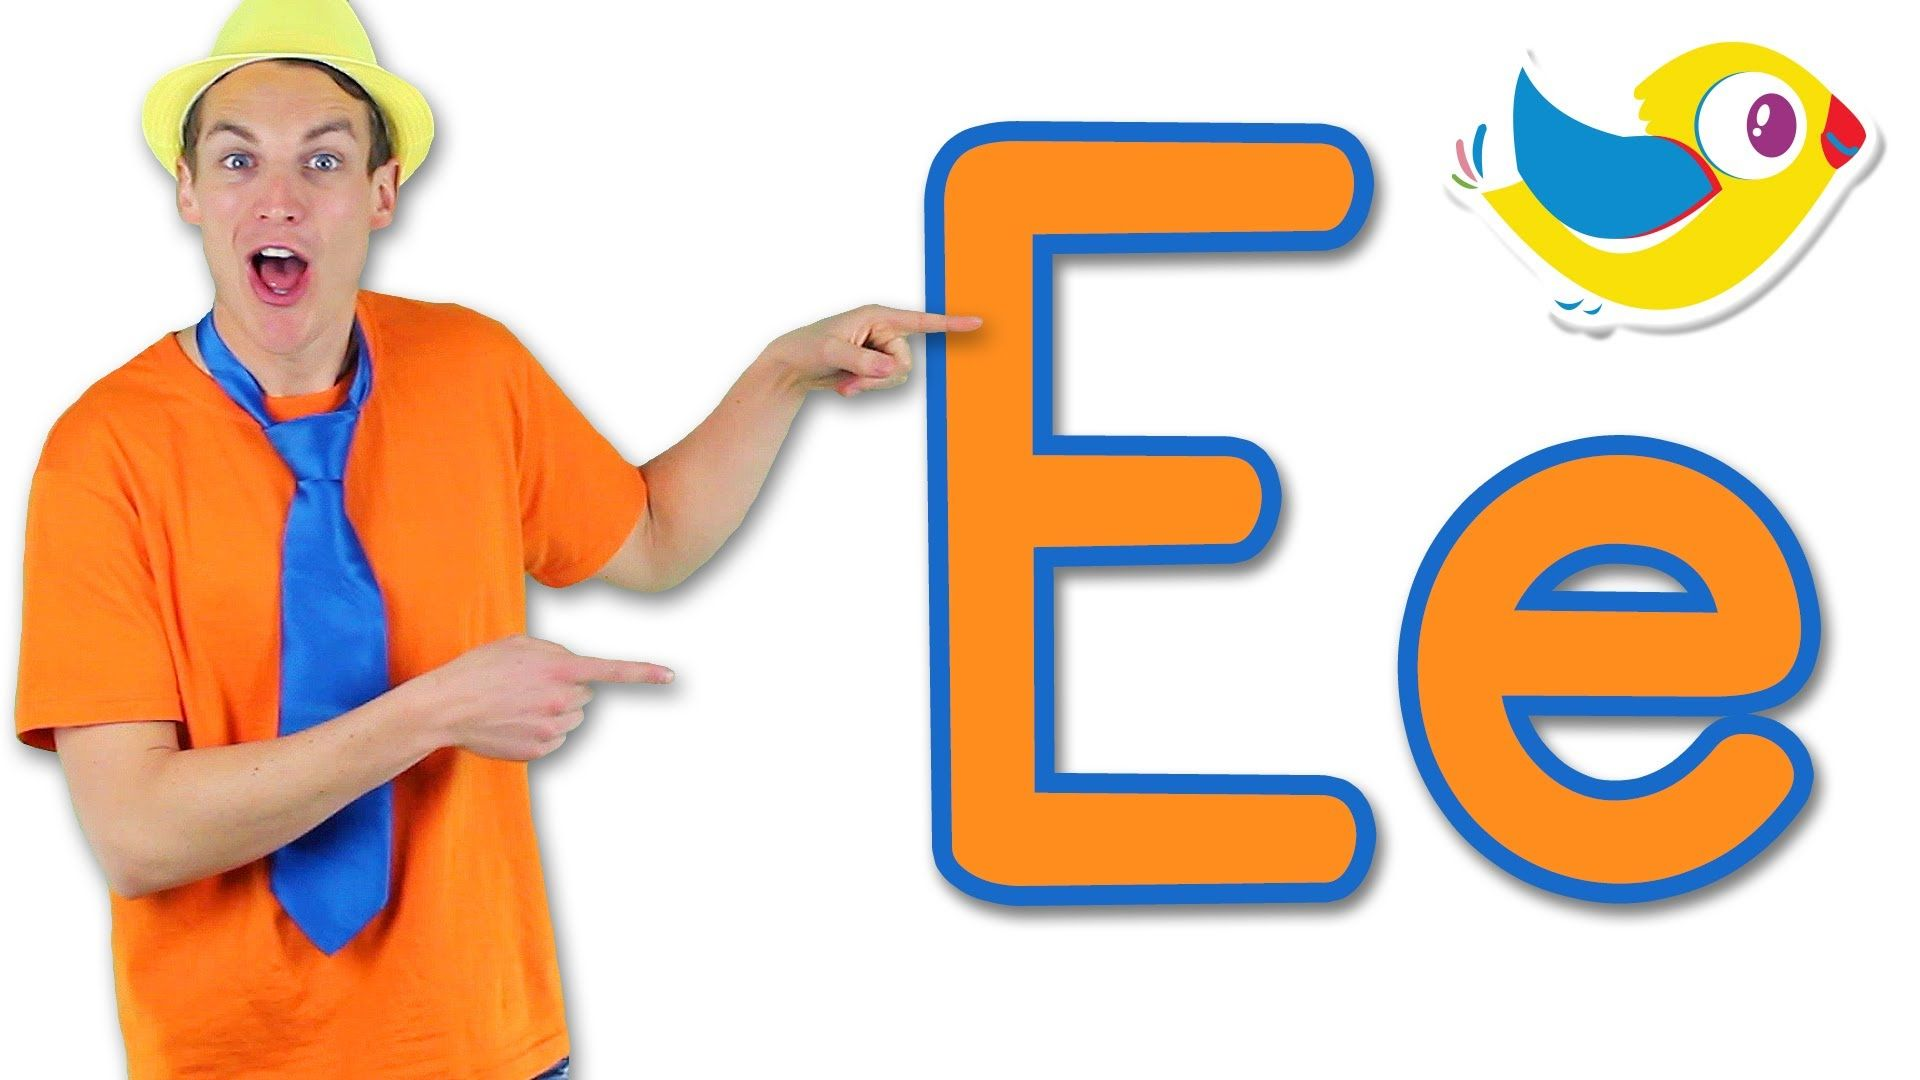 Let S Learn The Alphabet What Letter Comes Next Letter E